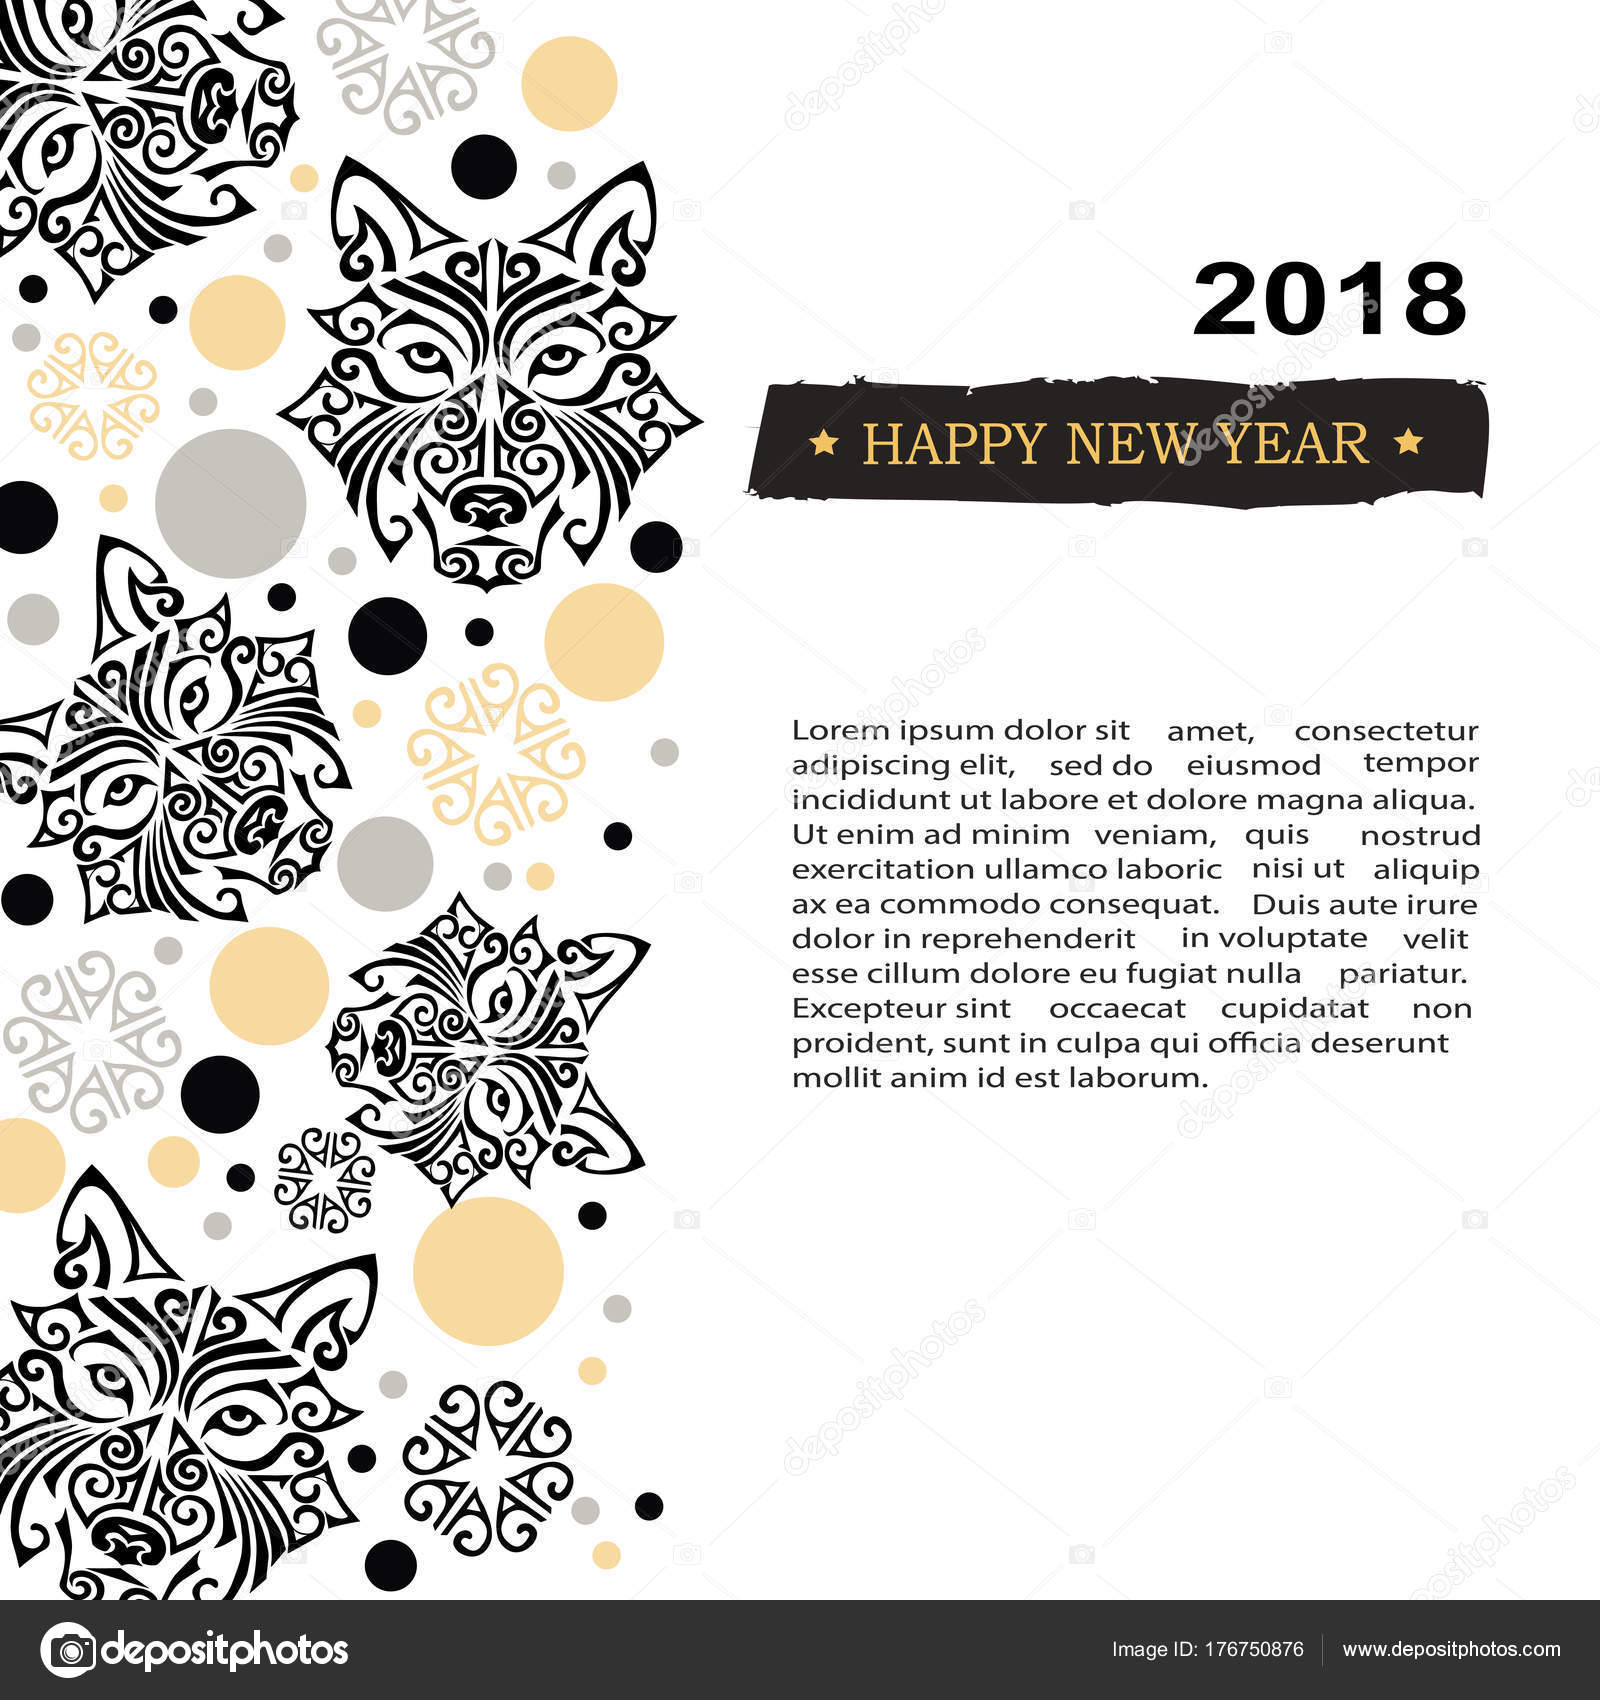 2018 new year card with black husky dogs head stylized maori face tattoo template for invitation fashion shop tattoo studio oriental concept